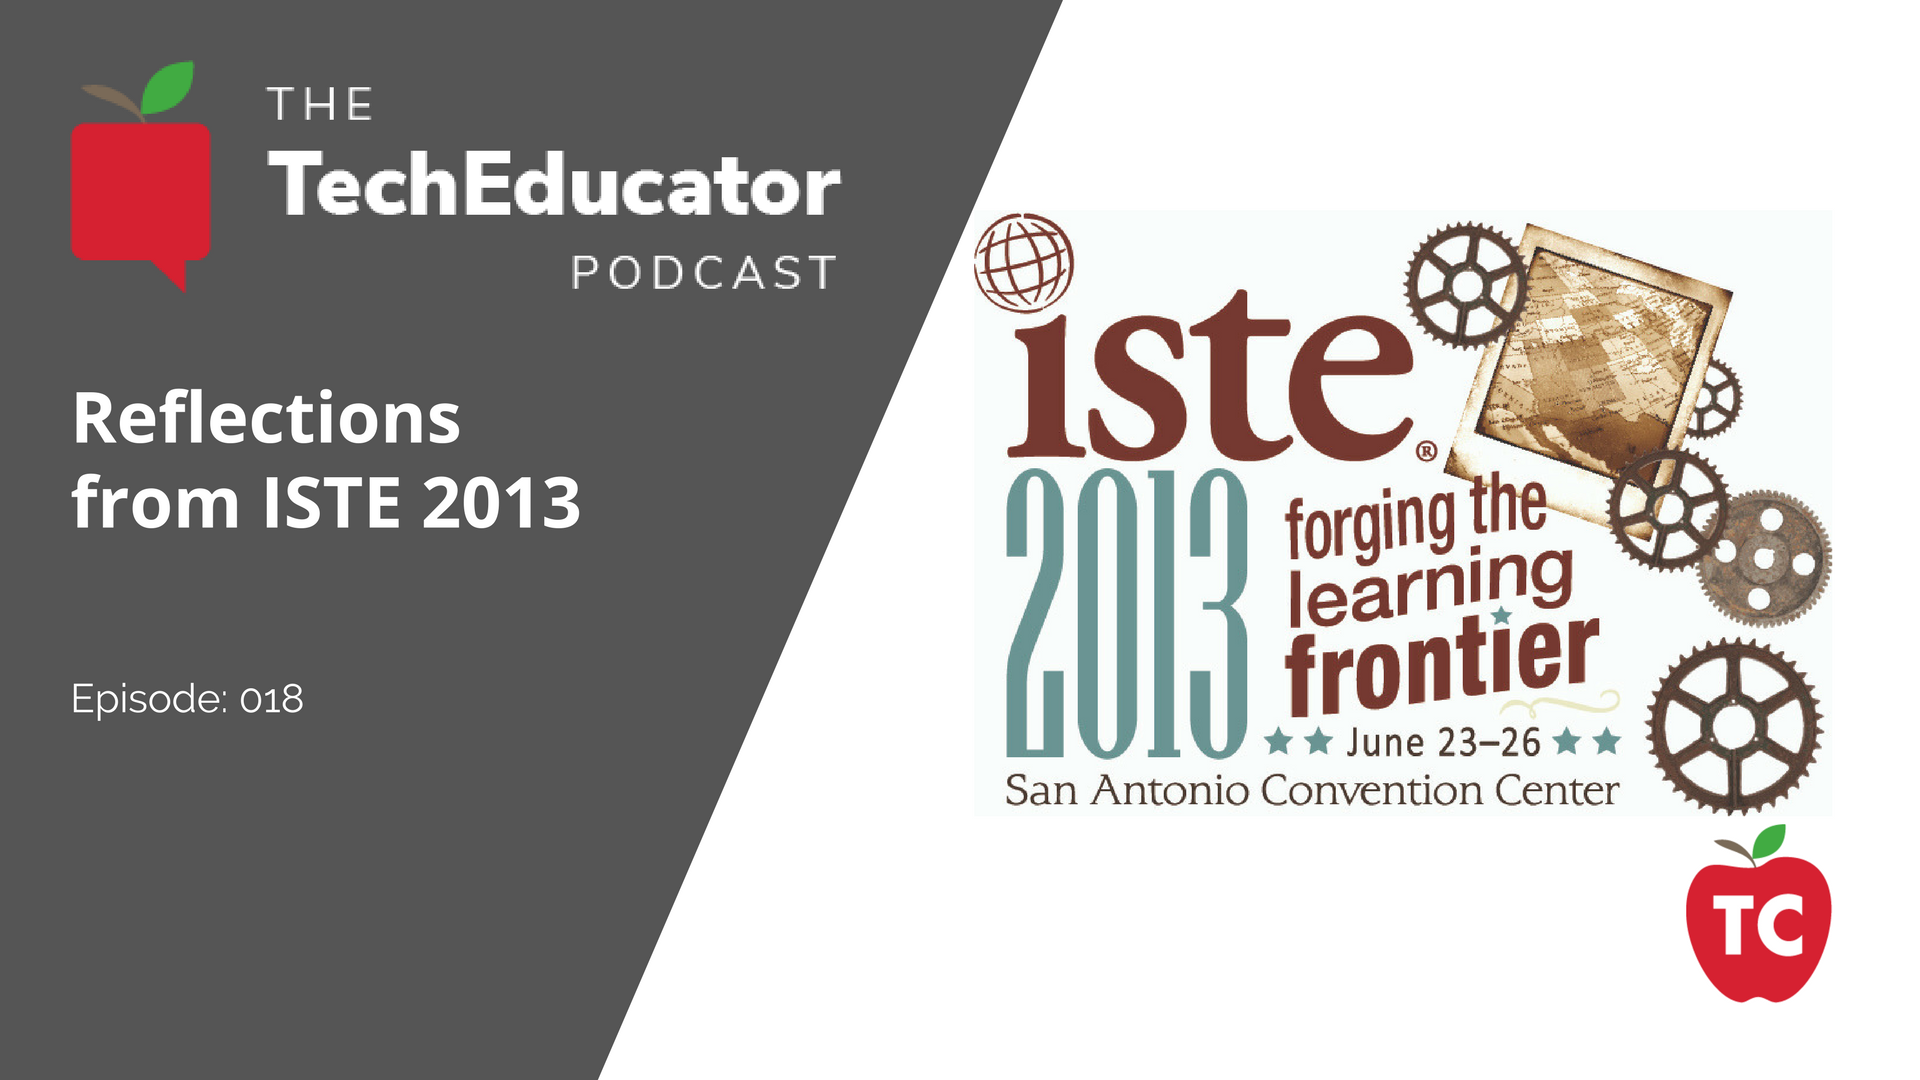 ISTE 2013 Conference